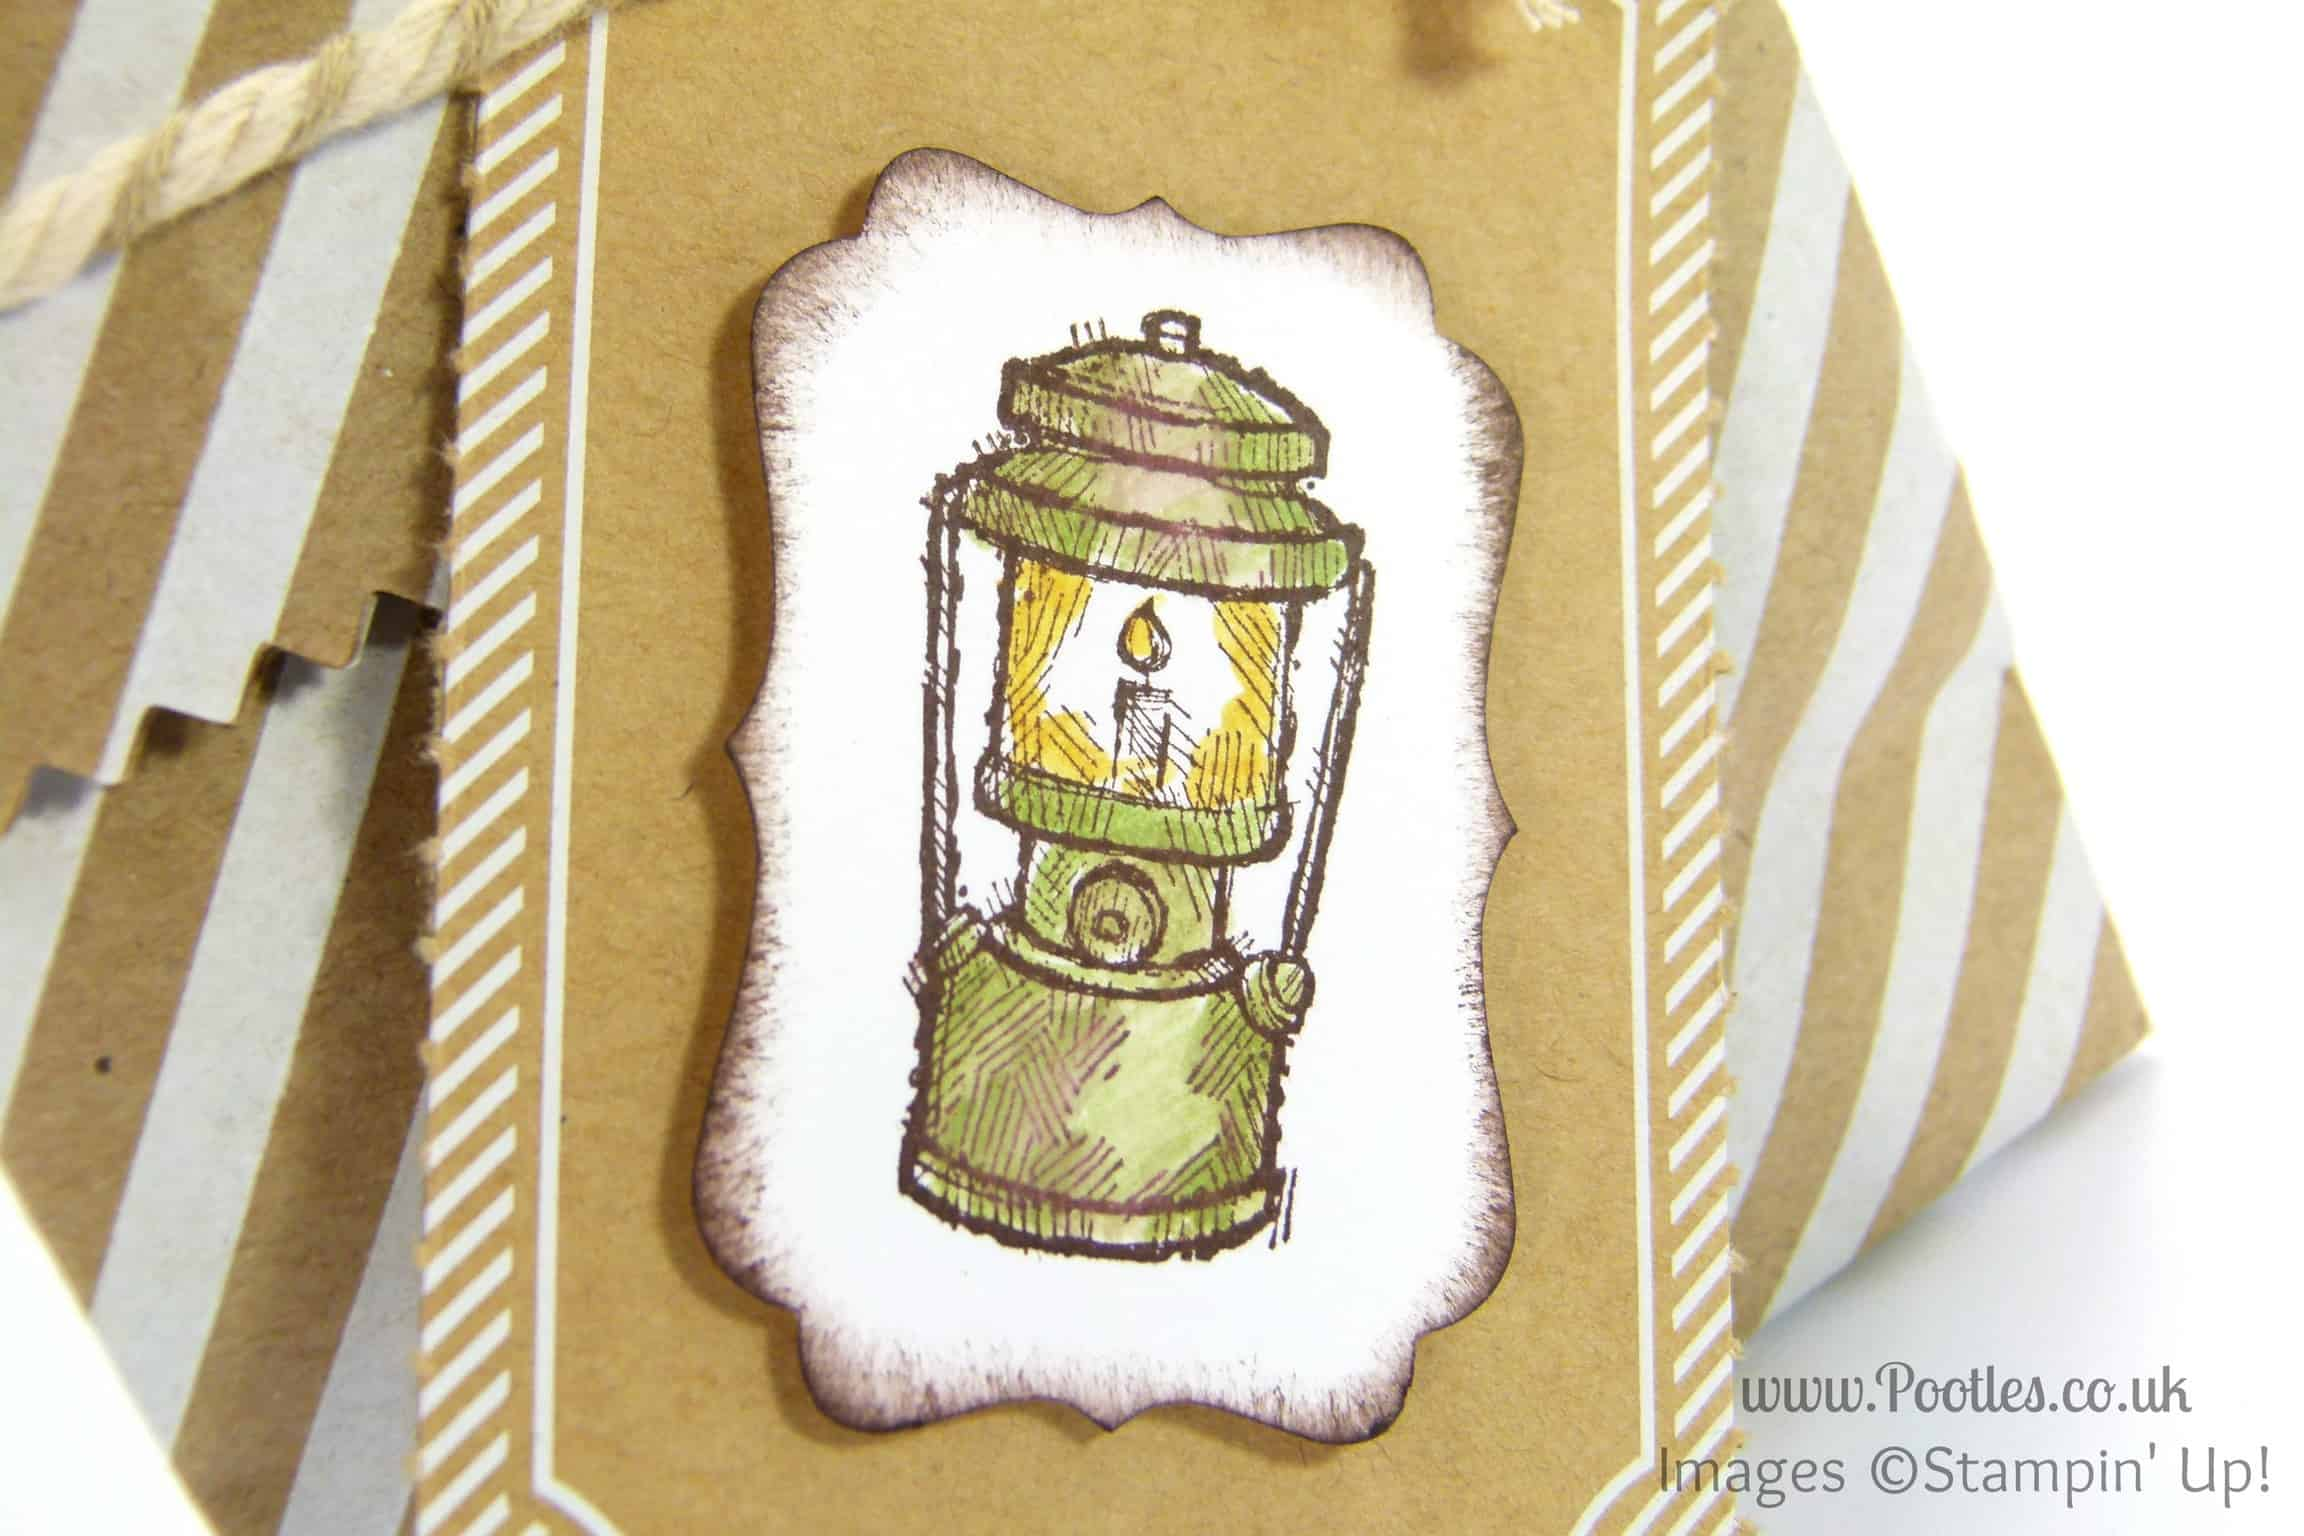 Stampin' Up! UK Demonstrator Pootles - Sweetie Round Bags for Camping Tutorial Blender Pen Detail